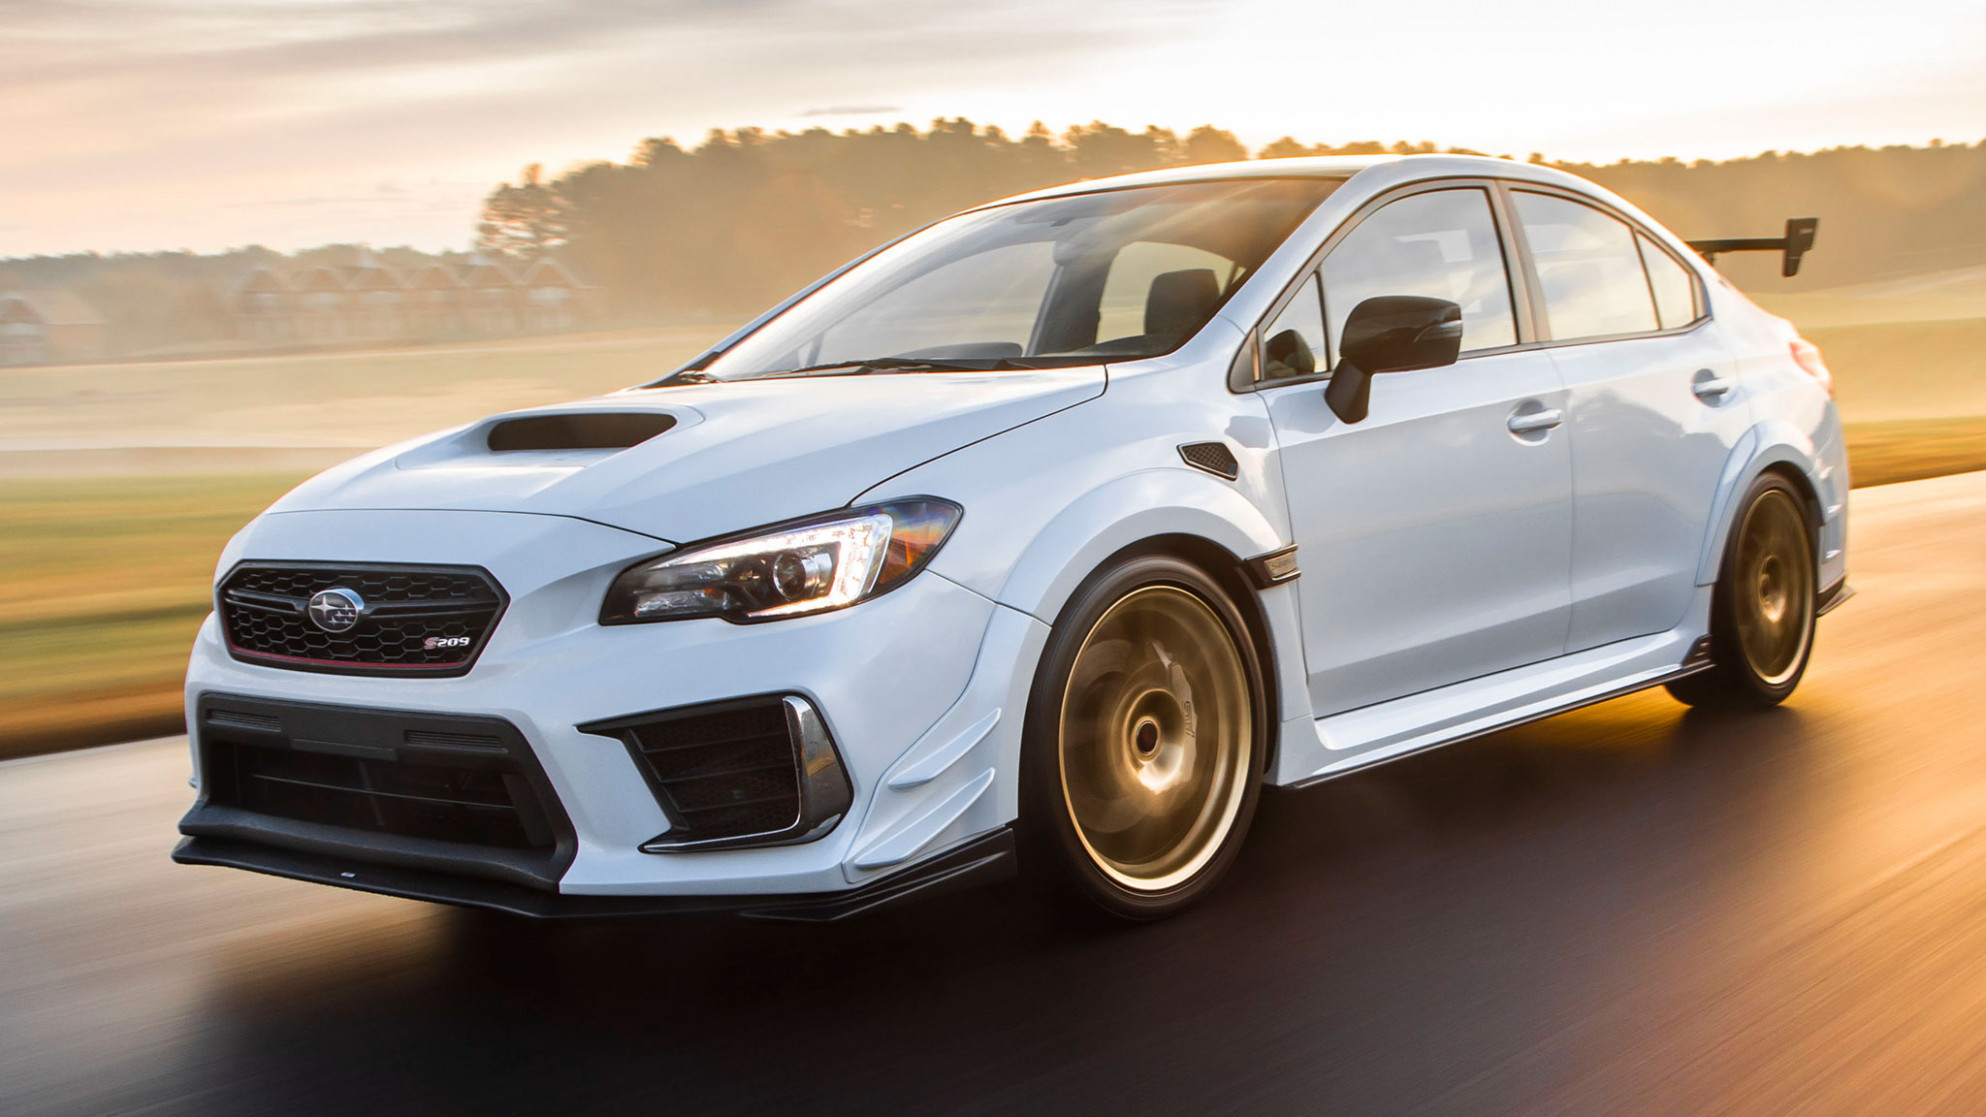 Subaru WRX STI S11 First Drive Review: Faster and Fantastic